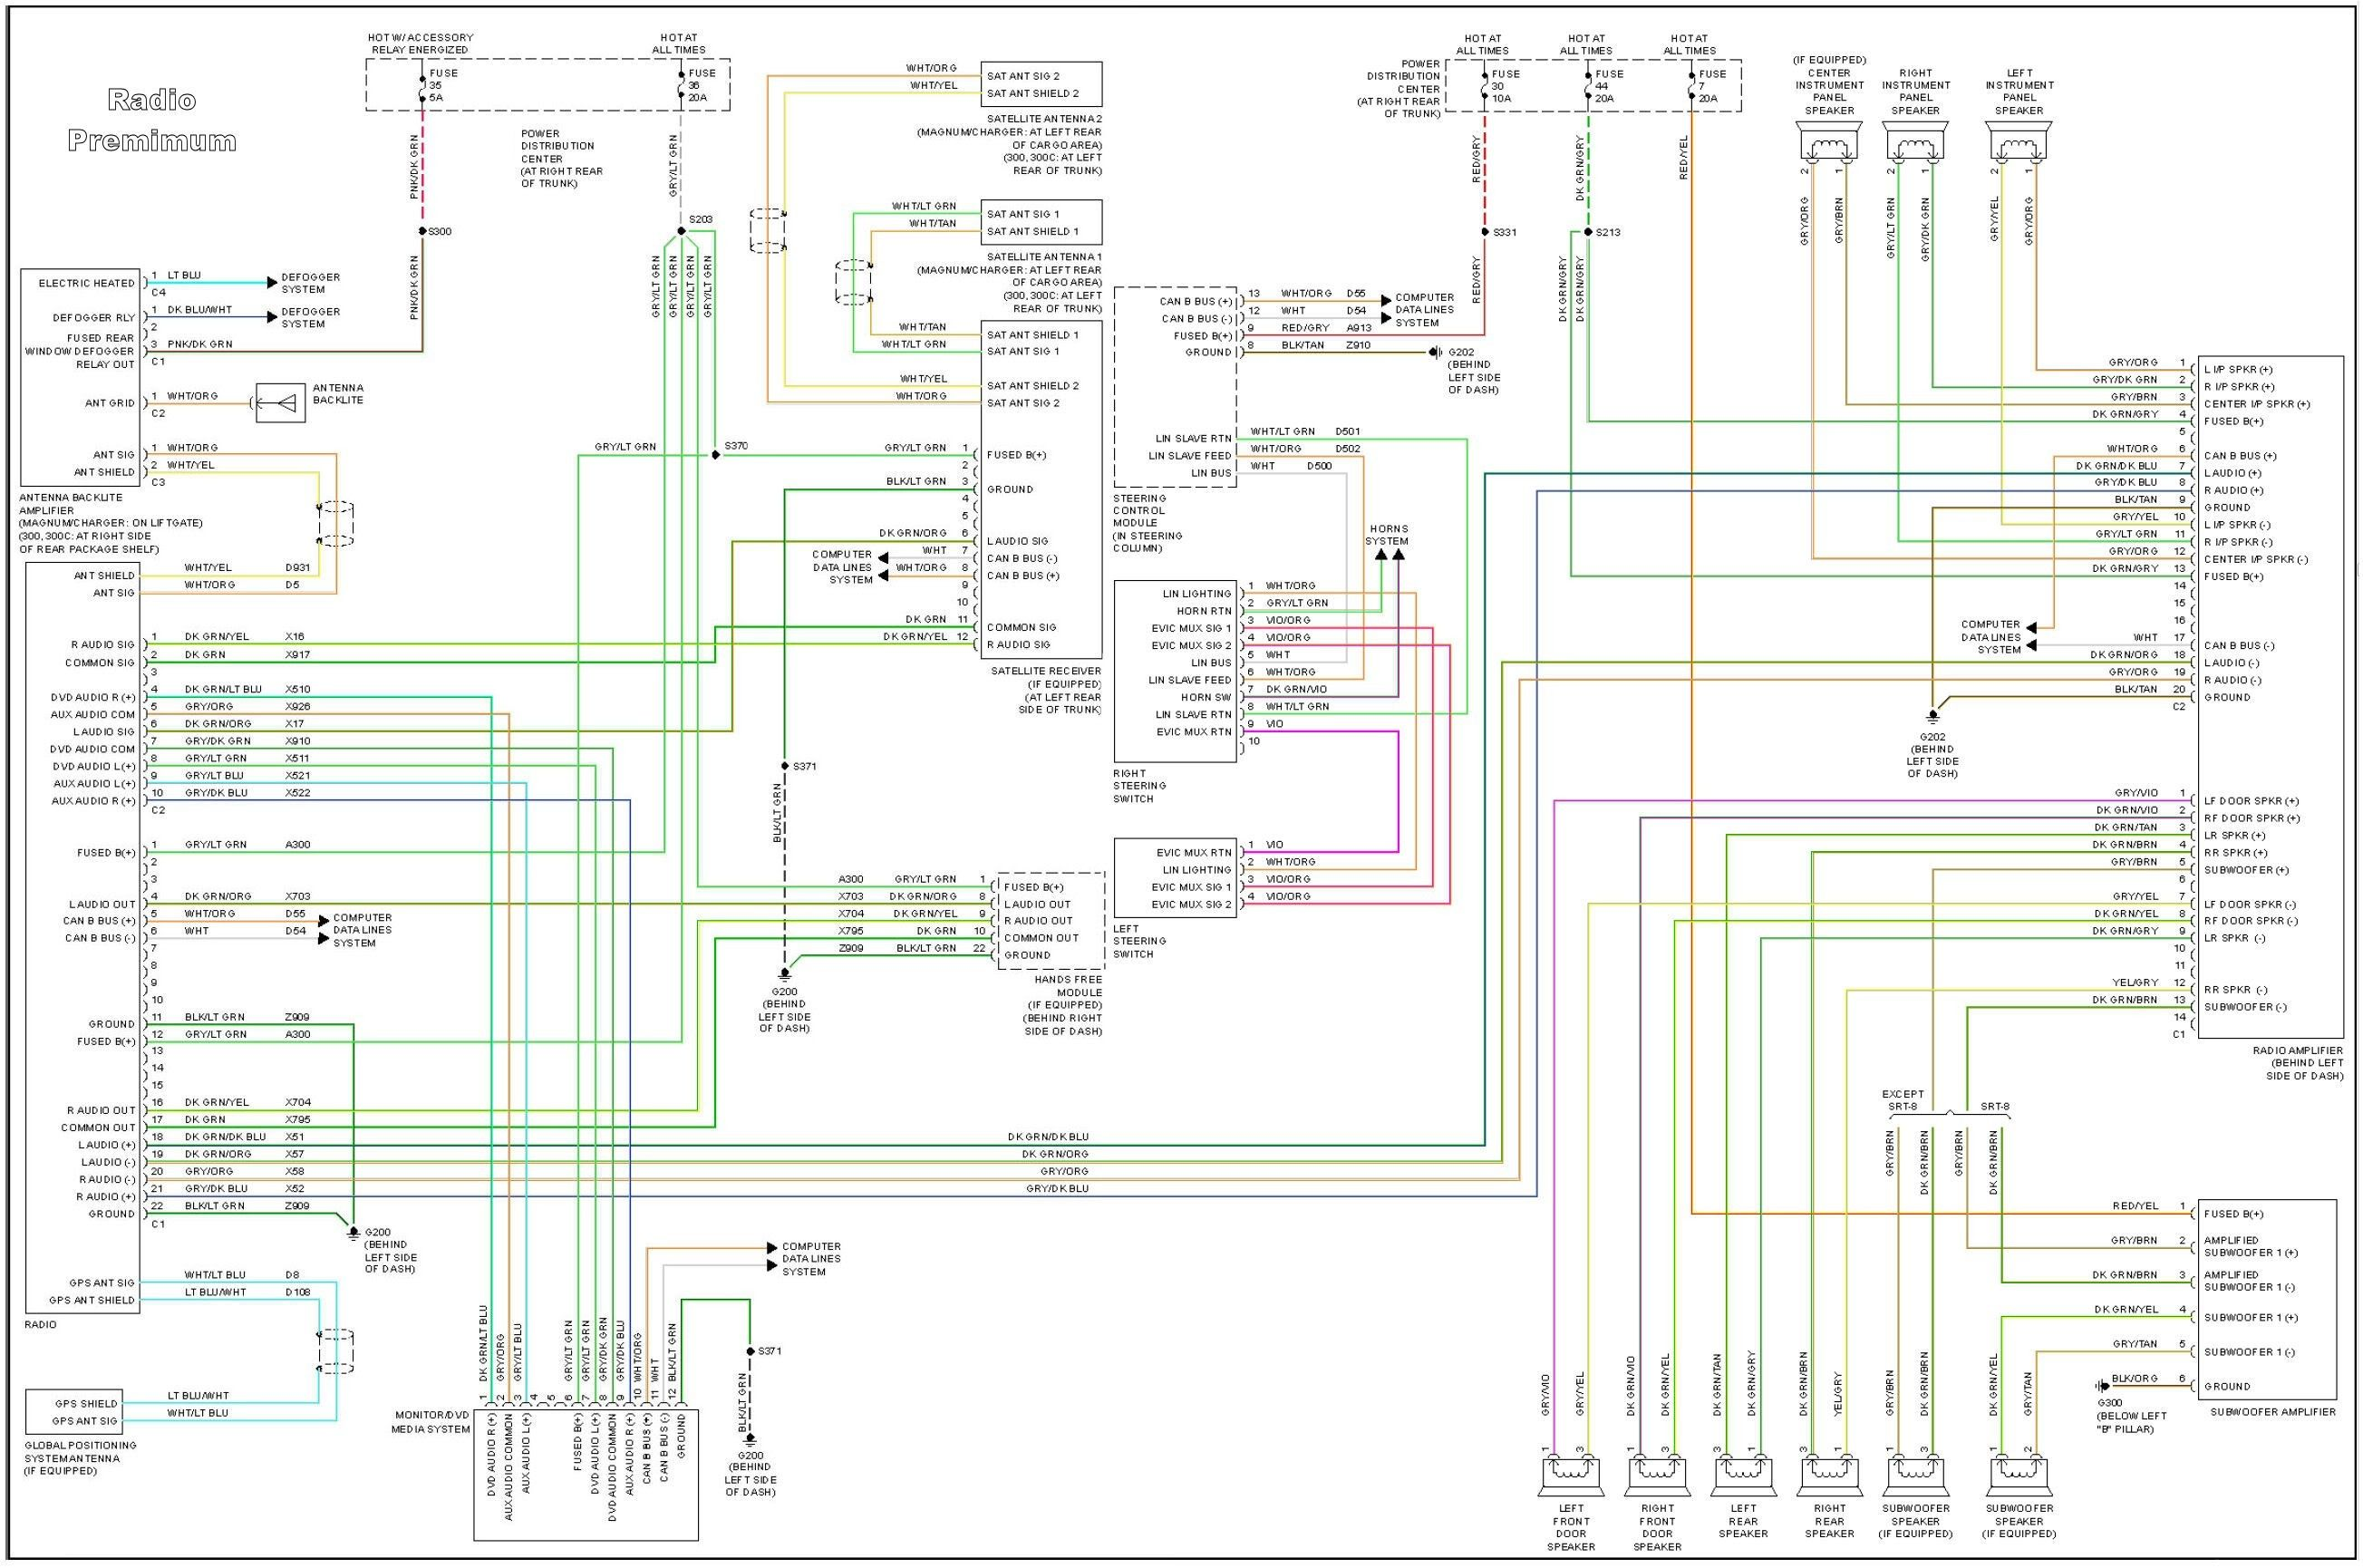 2005 Jeep Laredo Wiring Diagram - Wiring Diagram Server way-wiring - way- wiring.ristoranteitredenari.it | 2005 Jeep Grand Cherokee Laredo Wiring Diagram |  | Ristorante I Tre Denari Manerbio